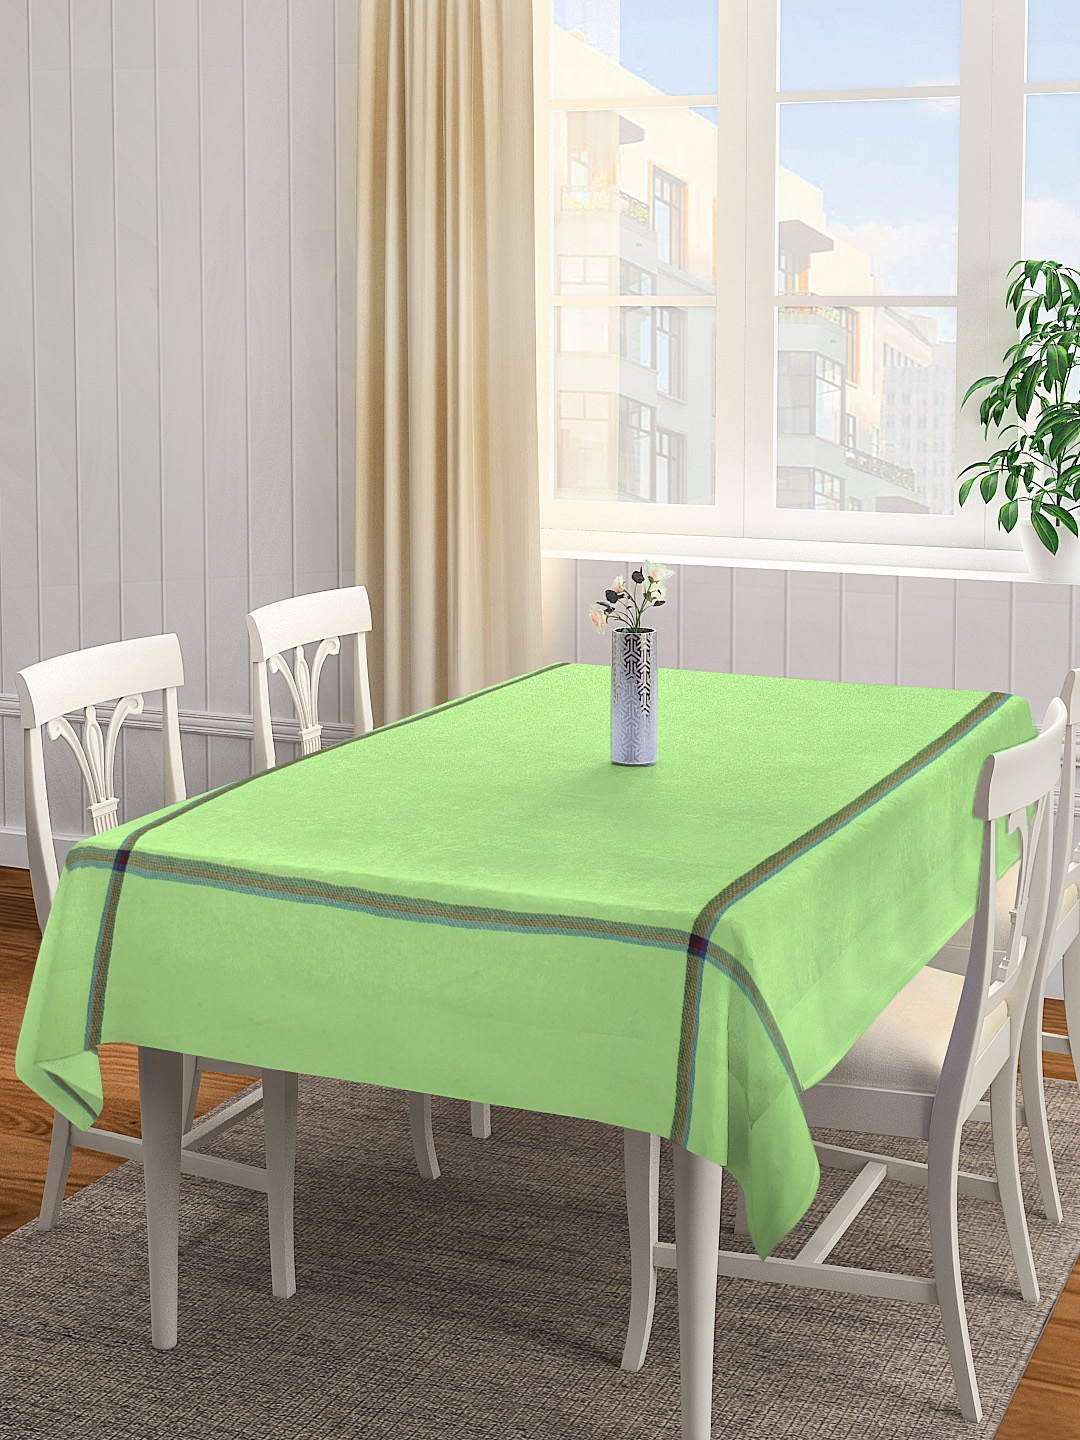 KLOTTHE Green Solid 4 Seater Square Table Cover